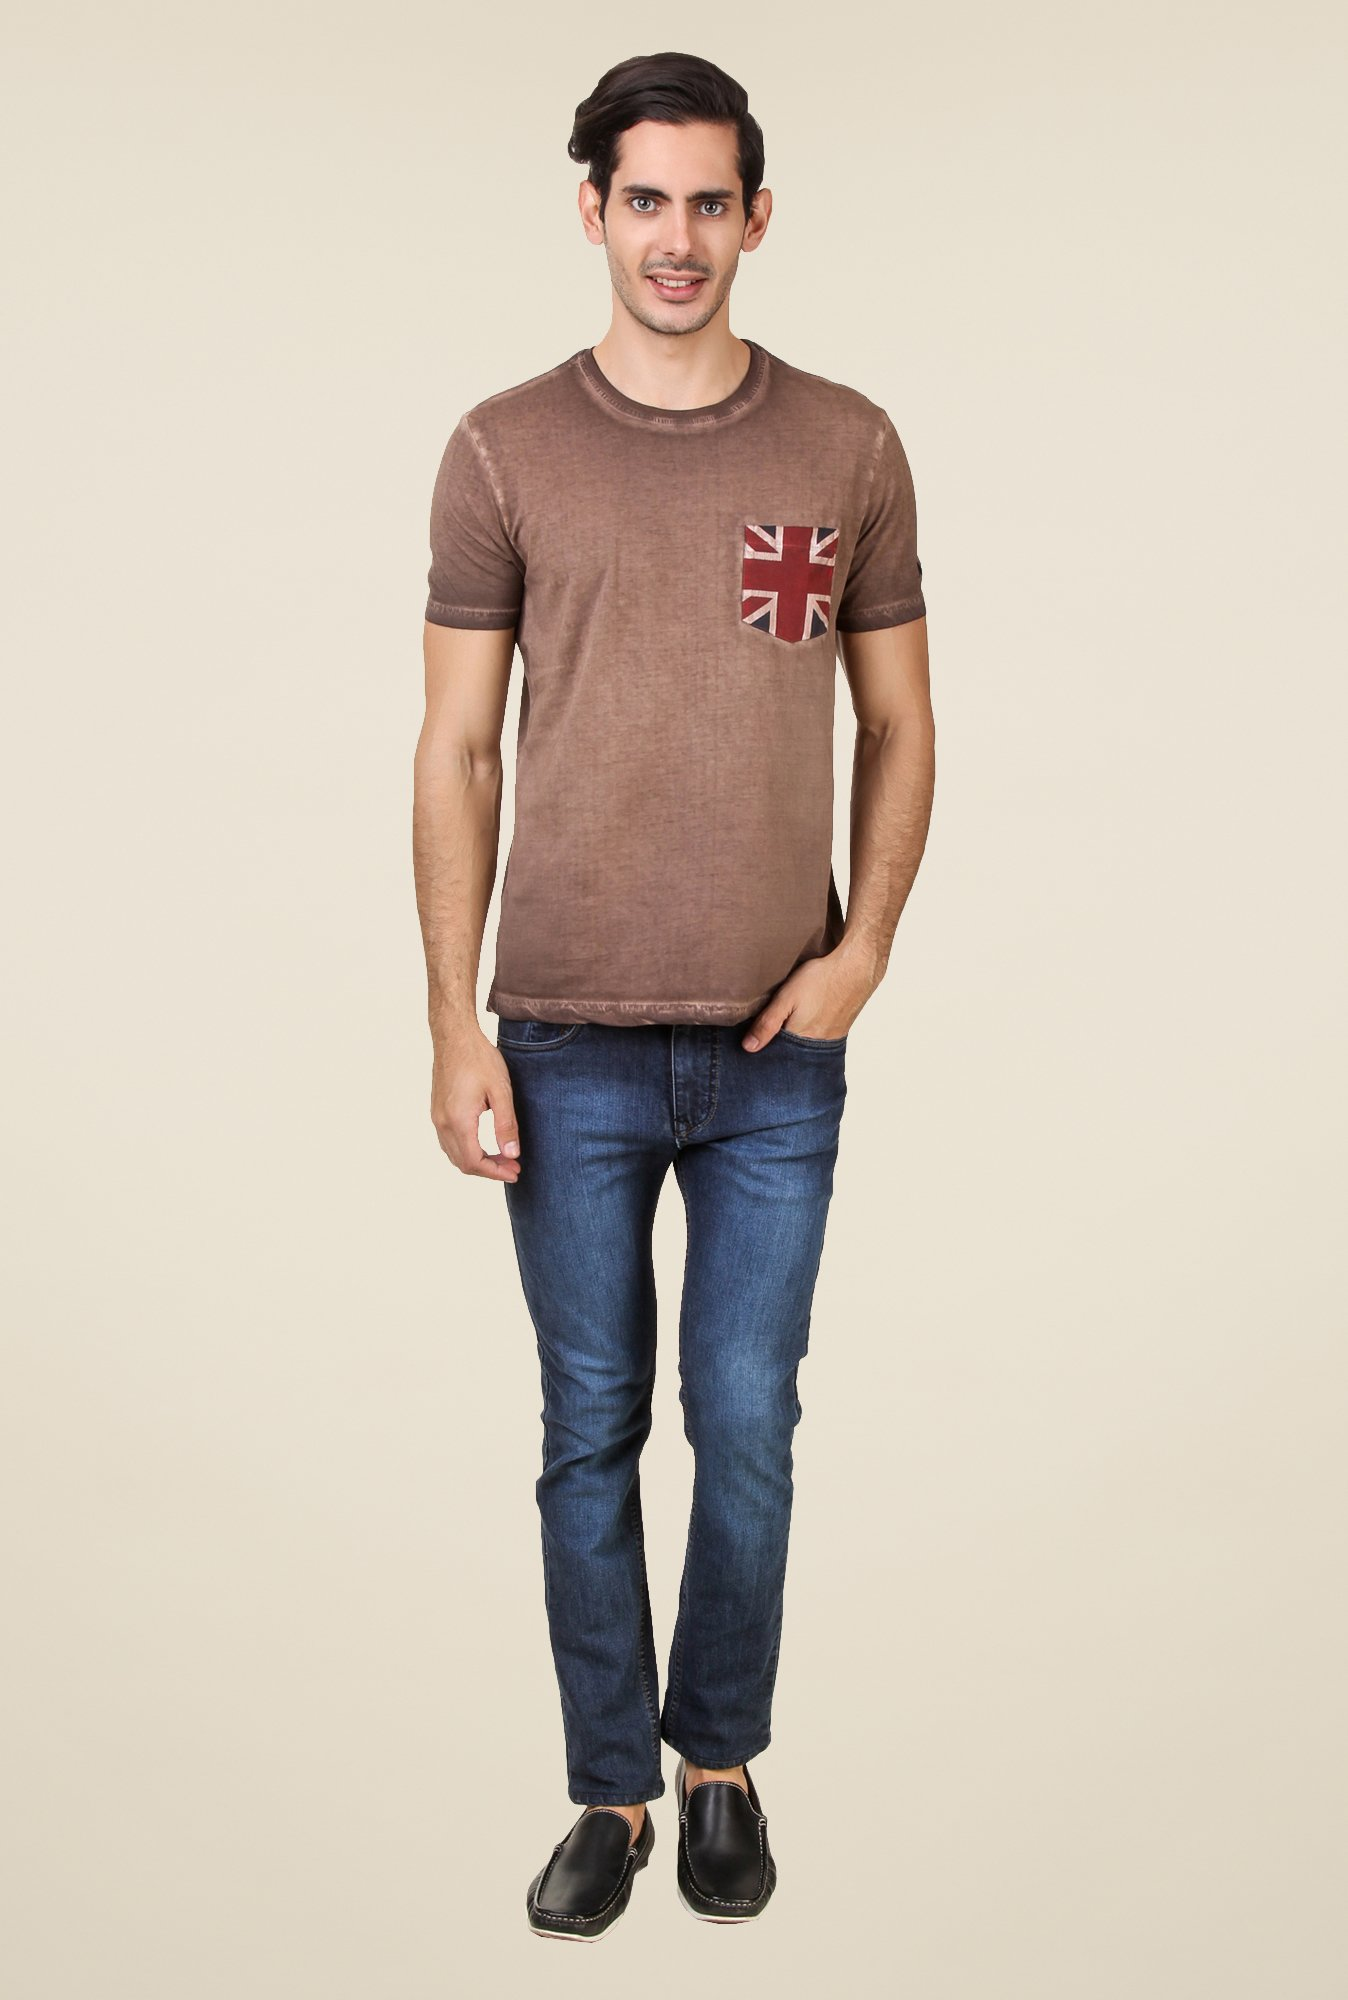 Spunk Brown Solid T Shirt